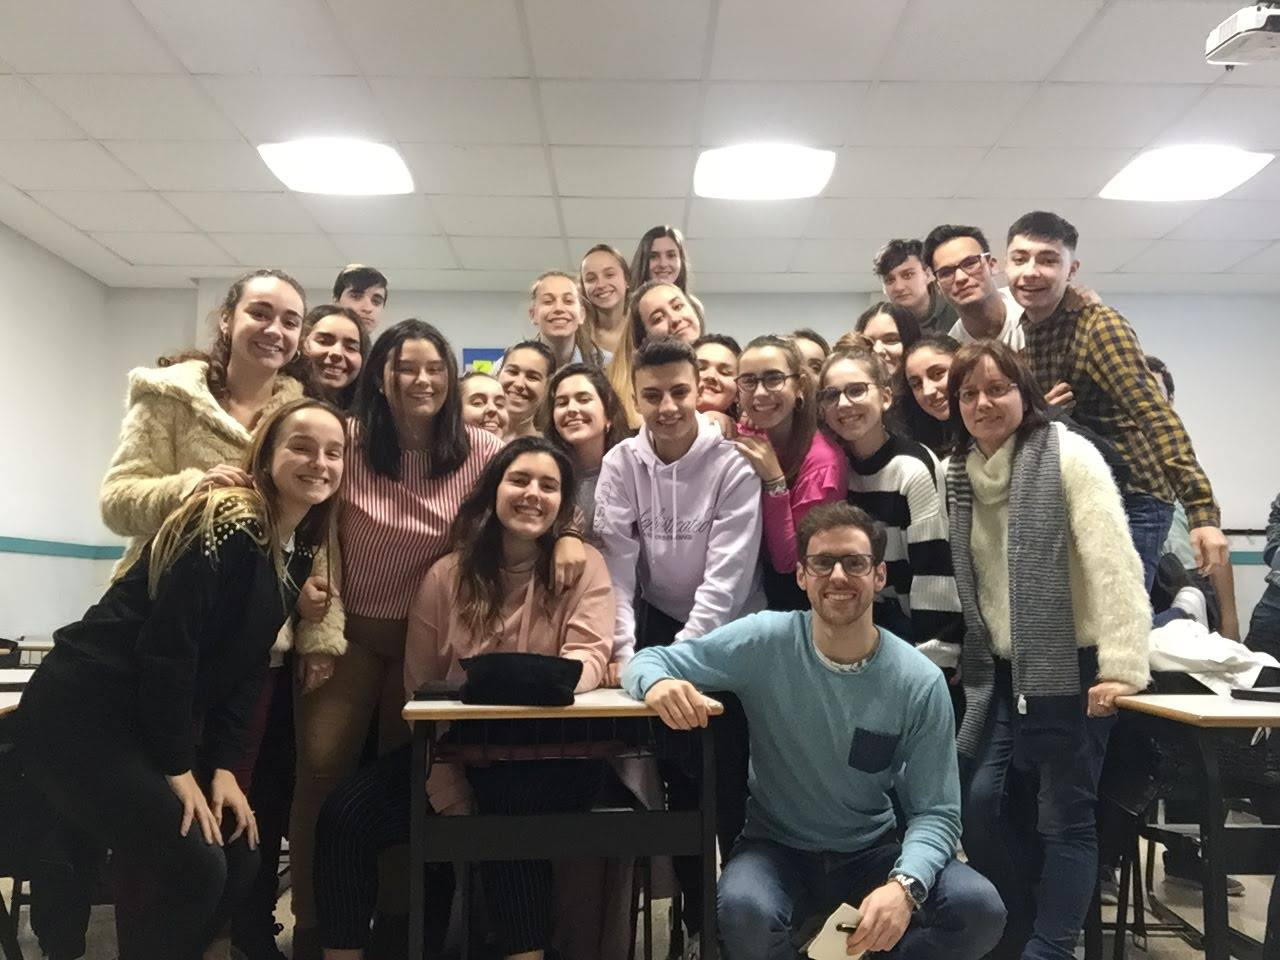 Ander with Mertxe (on the right) and one of her classes in Salesianos Barakaldo, Bilbao (Spain)